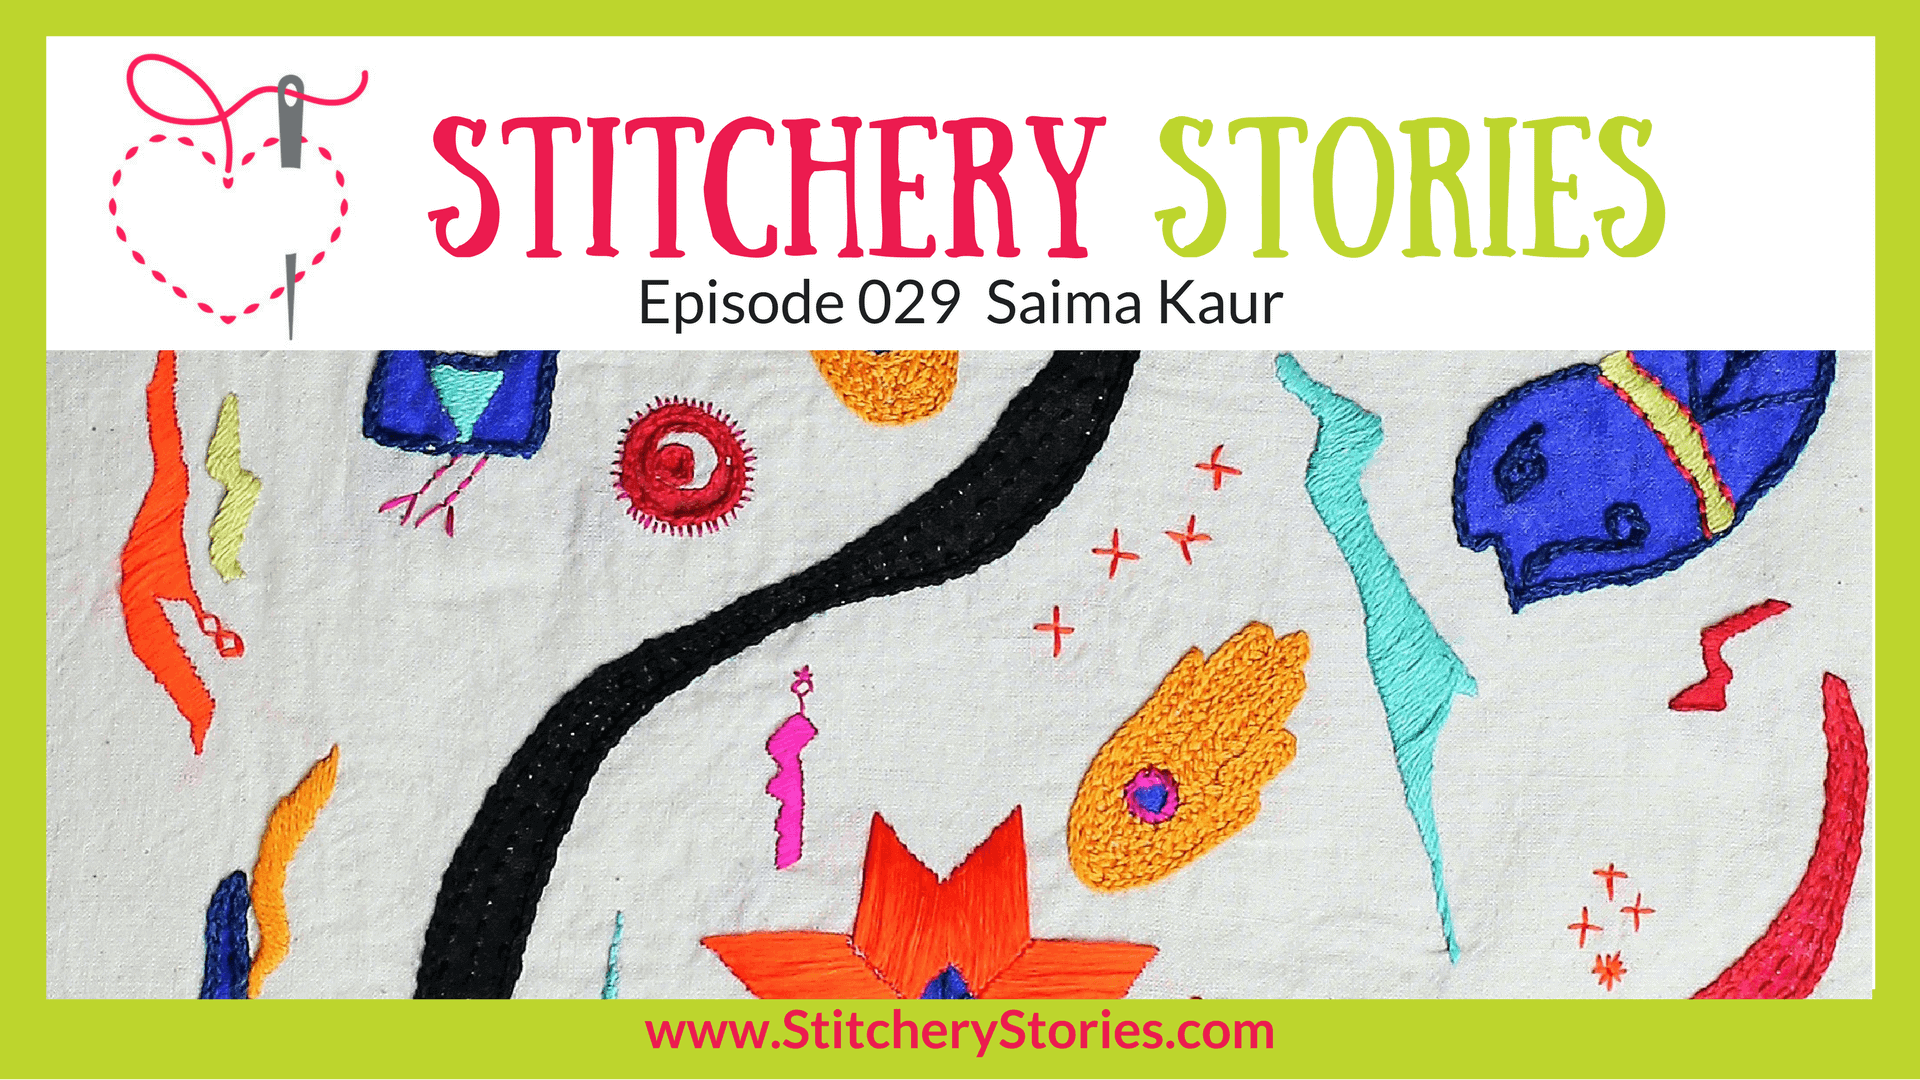 Saima Kaur Stitchery Stories Textile Art Podcast Wide Art